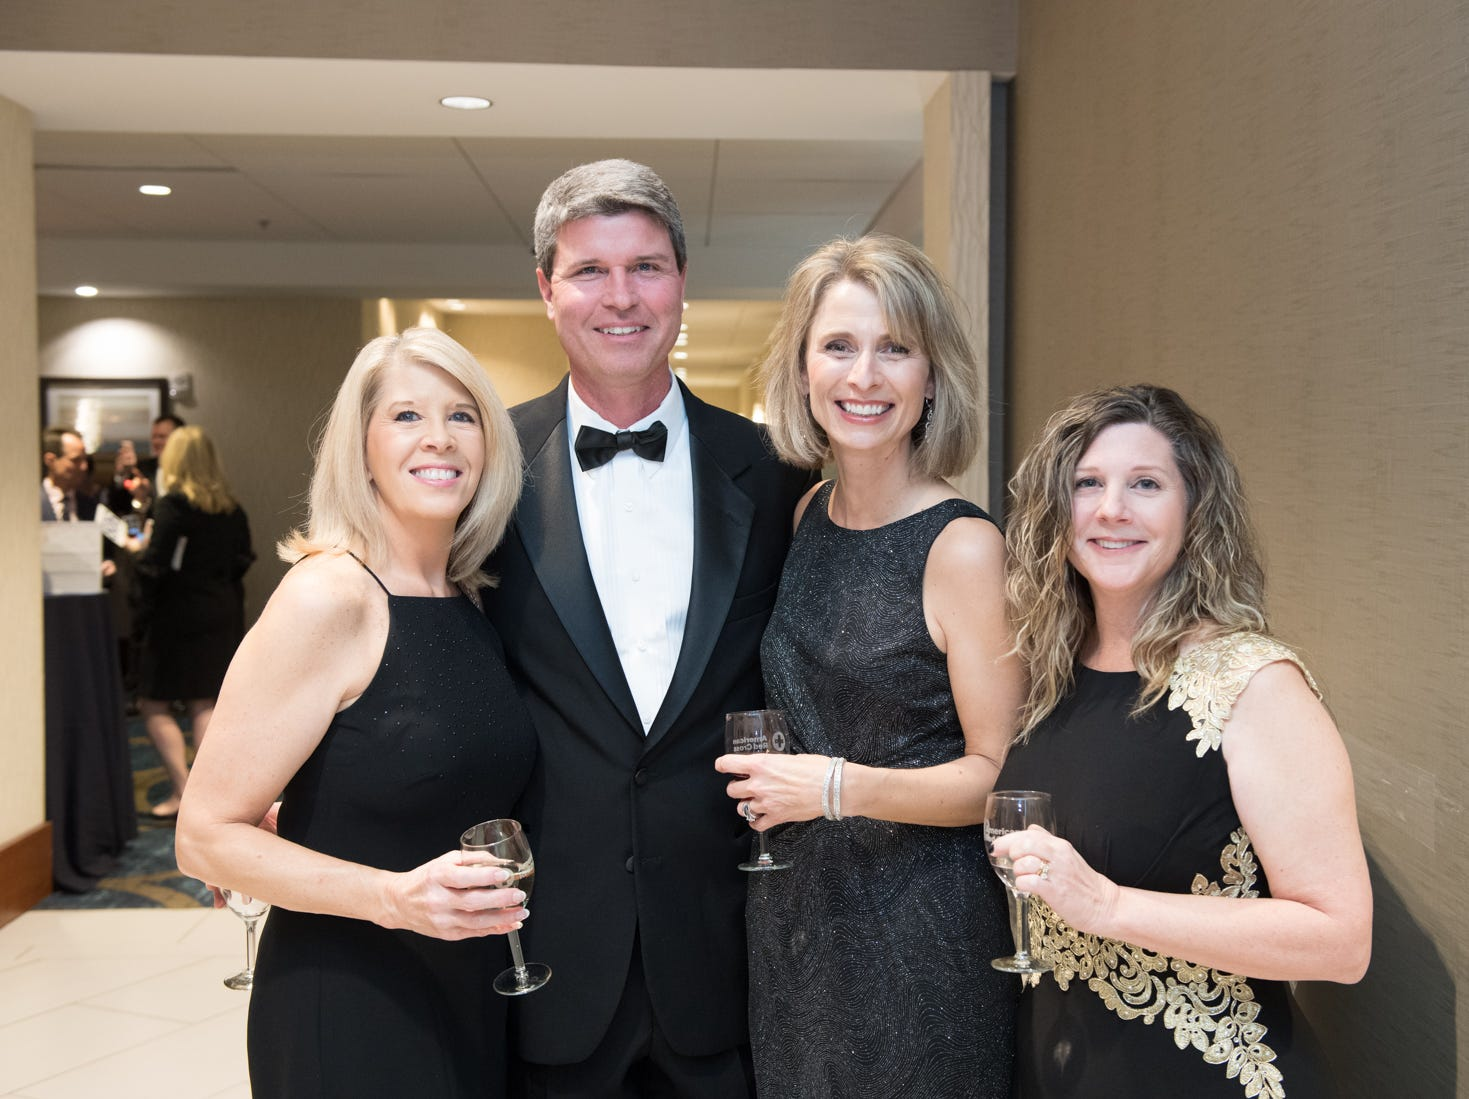 The 27th annual Red Cross Affair and wine auction is a beautiful black tie gala and is one of Greenville's most exclusive ticketed events. The event featured wine tasting, silent and live auctions, seated dinner and dancing. All proceeds help provide vital services to the residents of South Carolina including disaster relief, health and safety classes, blood collection for hospitals and services to the armed forces.